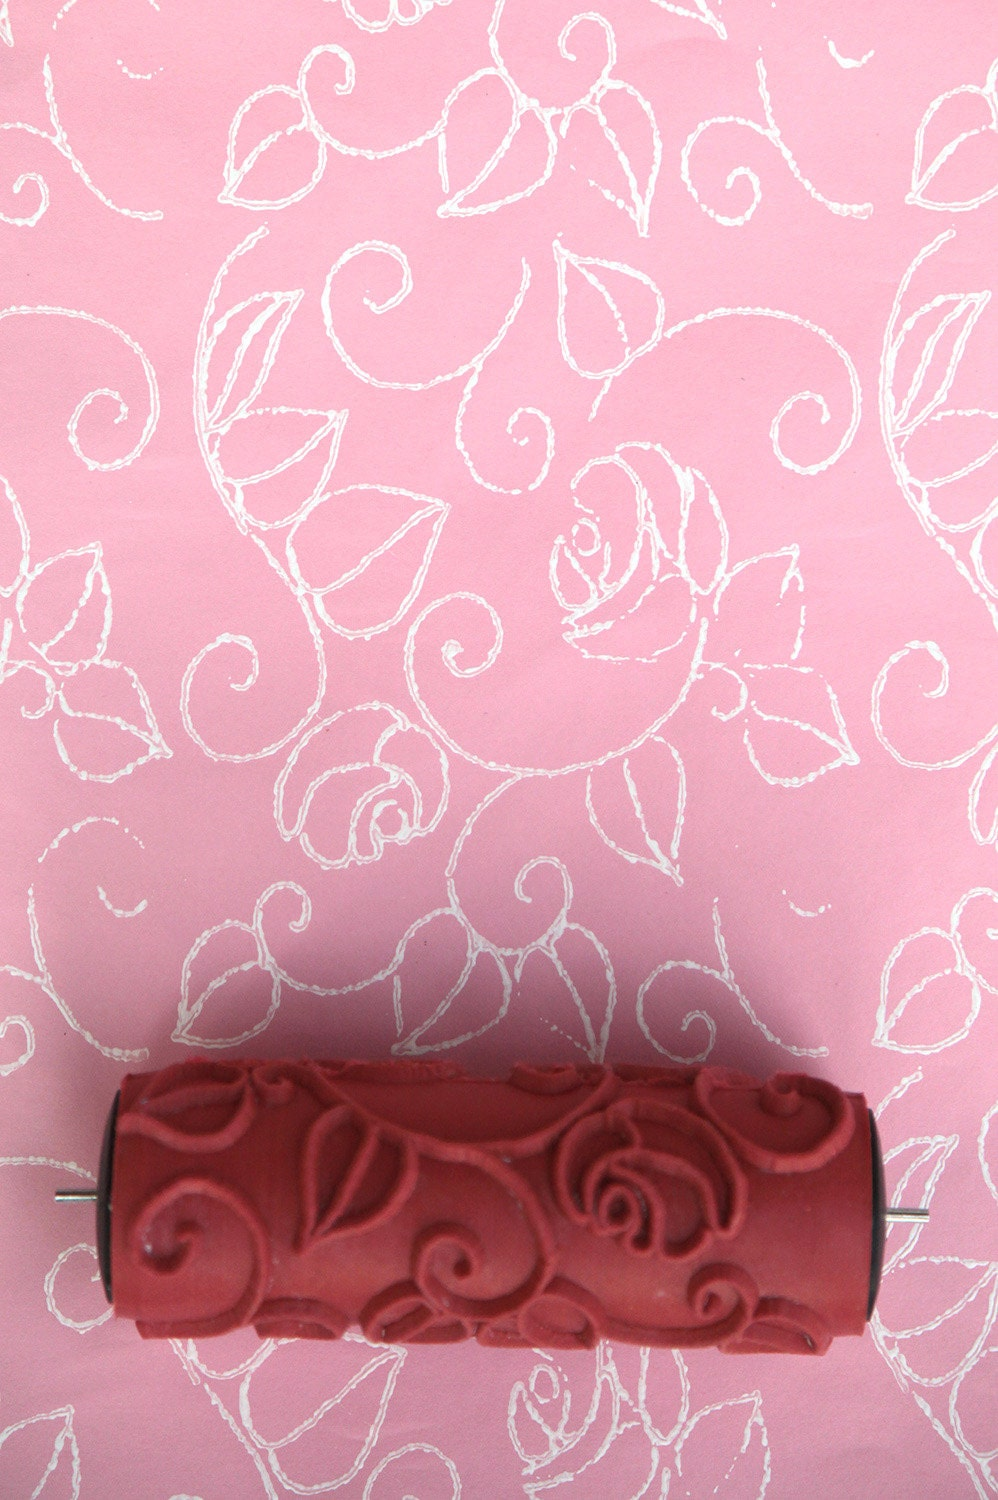 Patterned paint roller for home decor no 1 by haubenart on etsy for Paint roller designs home depot